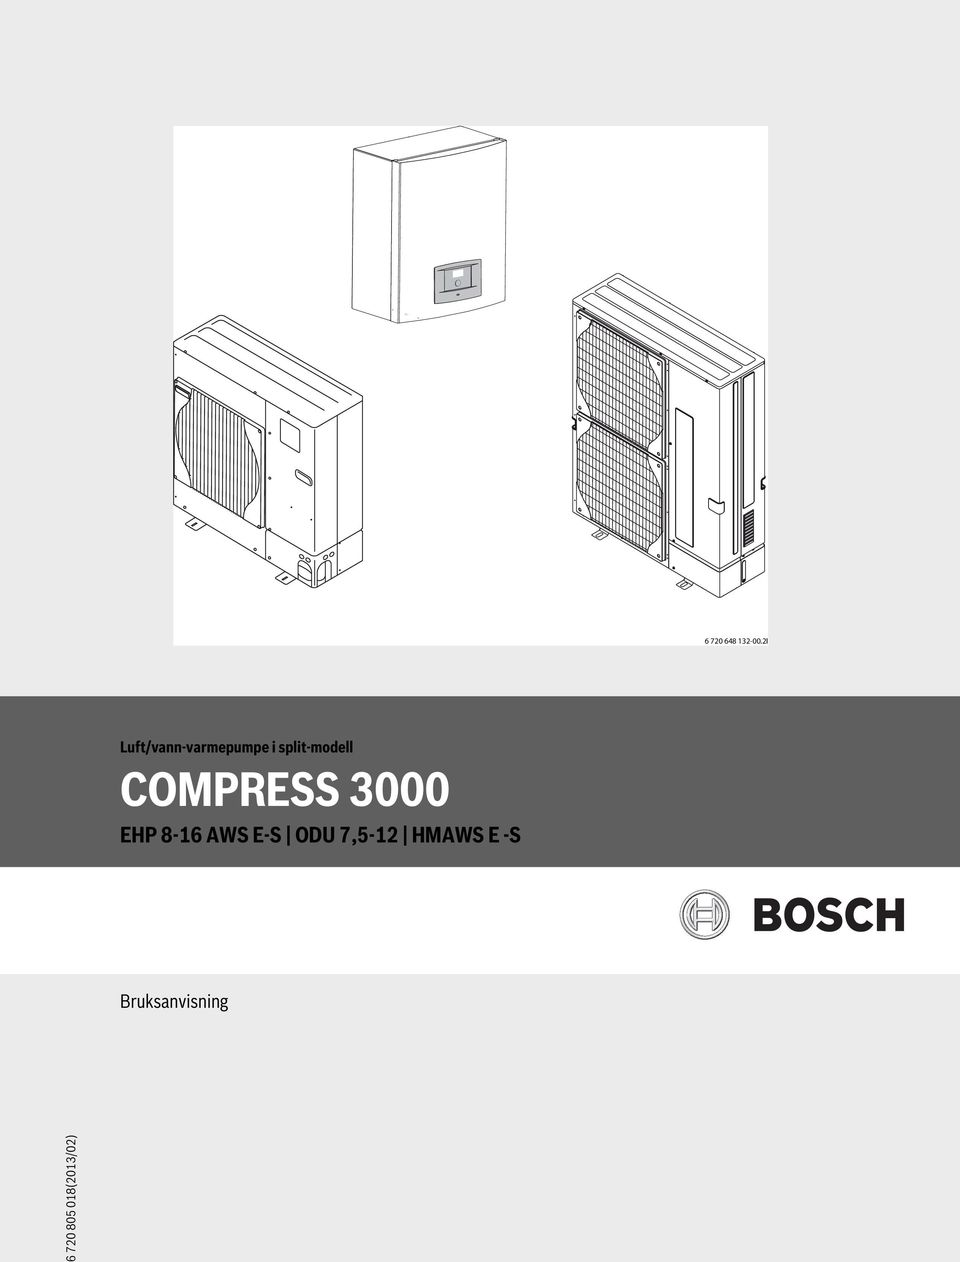 split-modell COMPRESS 3000 EHP 8-16